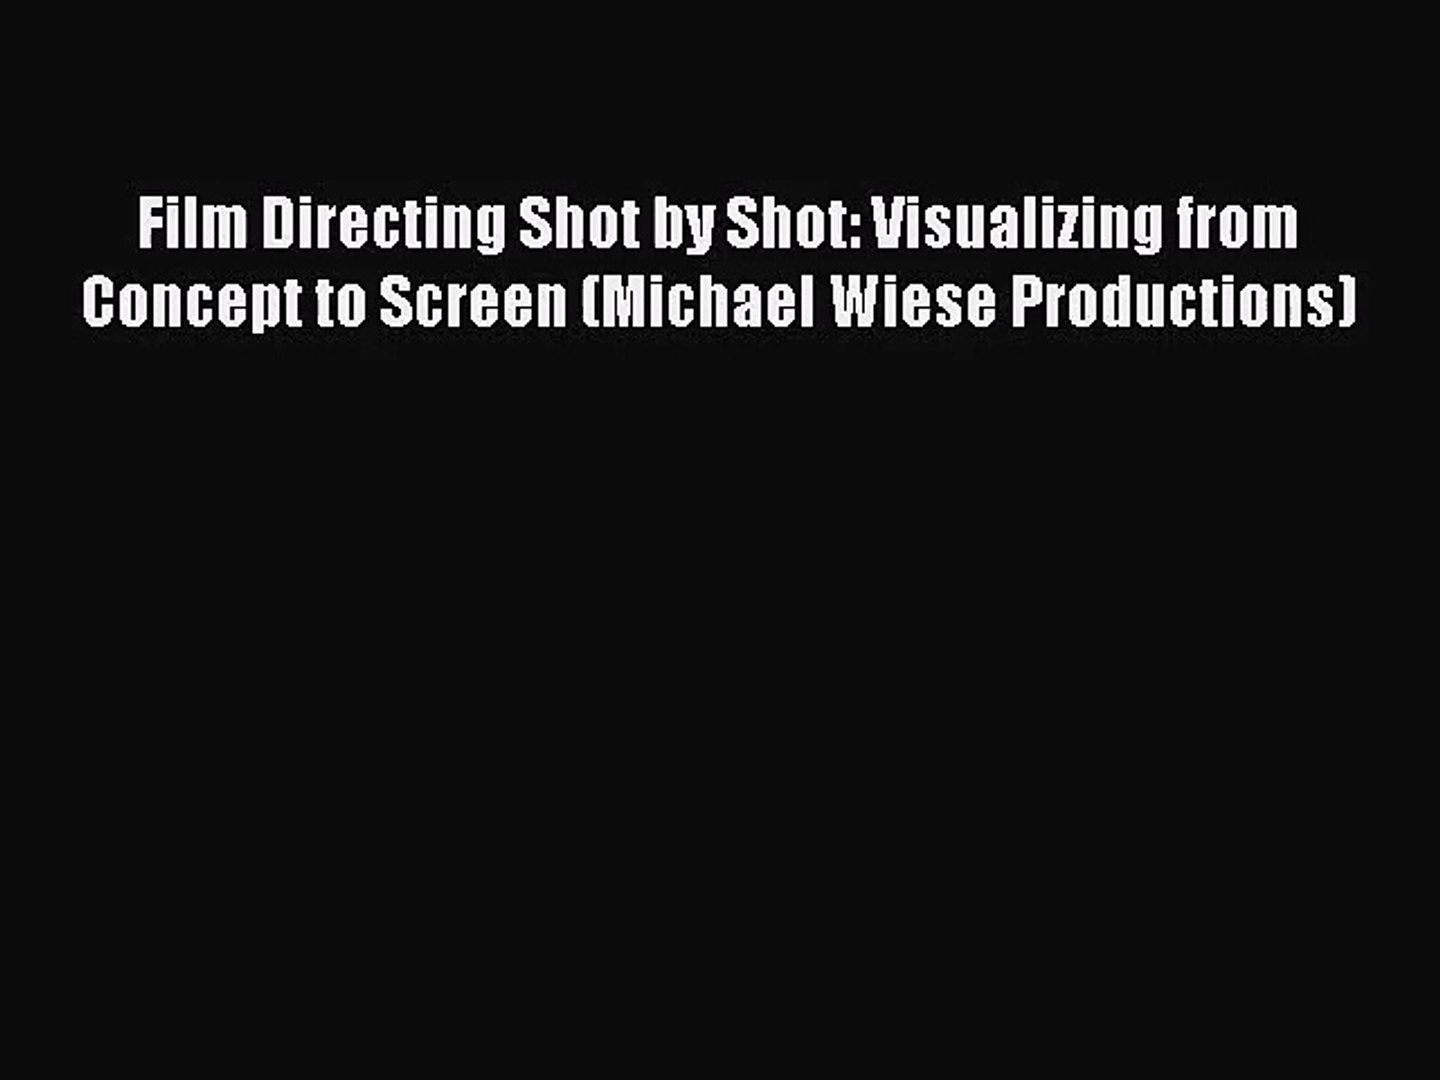 (PDF Download) Film Directing Shot by Shot: Visualizing from Concept to Screen (Michael Wiese